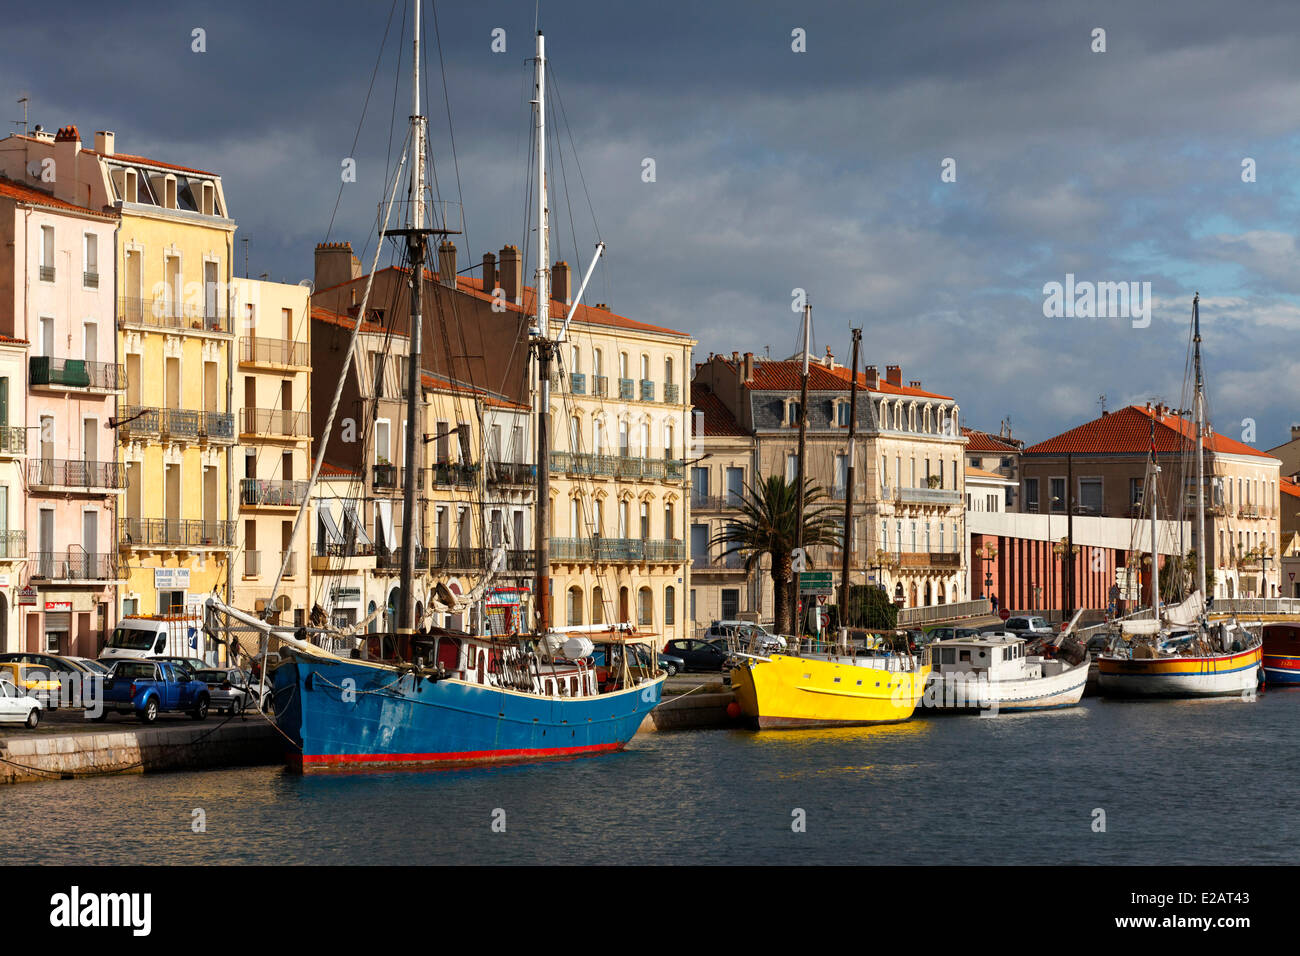 France, Herault, Sete, Canal Side, old rigging two mats on the Quai de la Republic - Stock Image